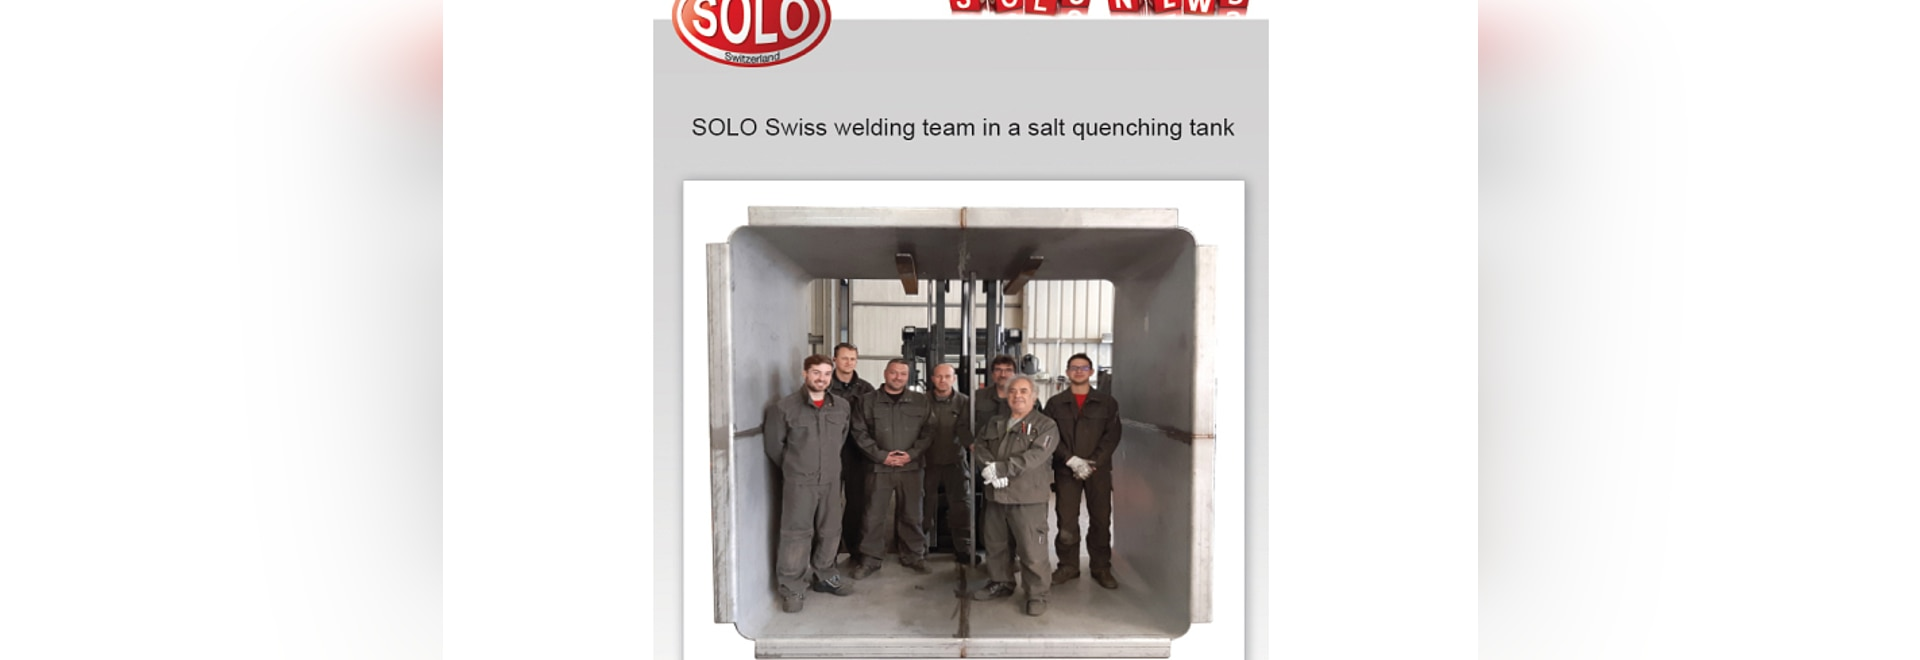 SOLO Swiss is pleased to present his welding team in a huge salt quenching tank !